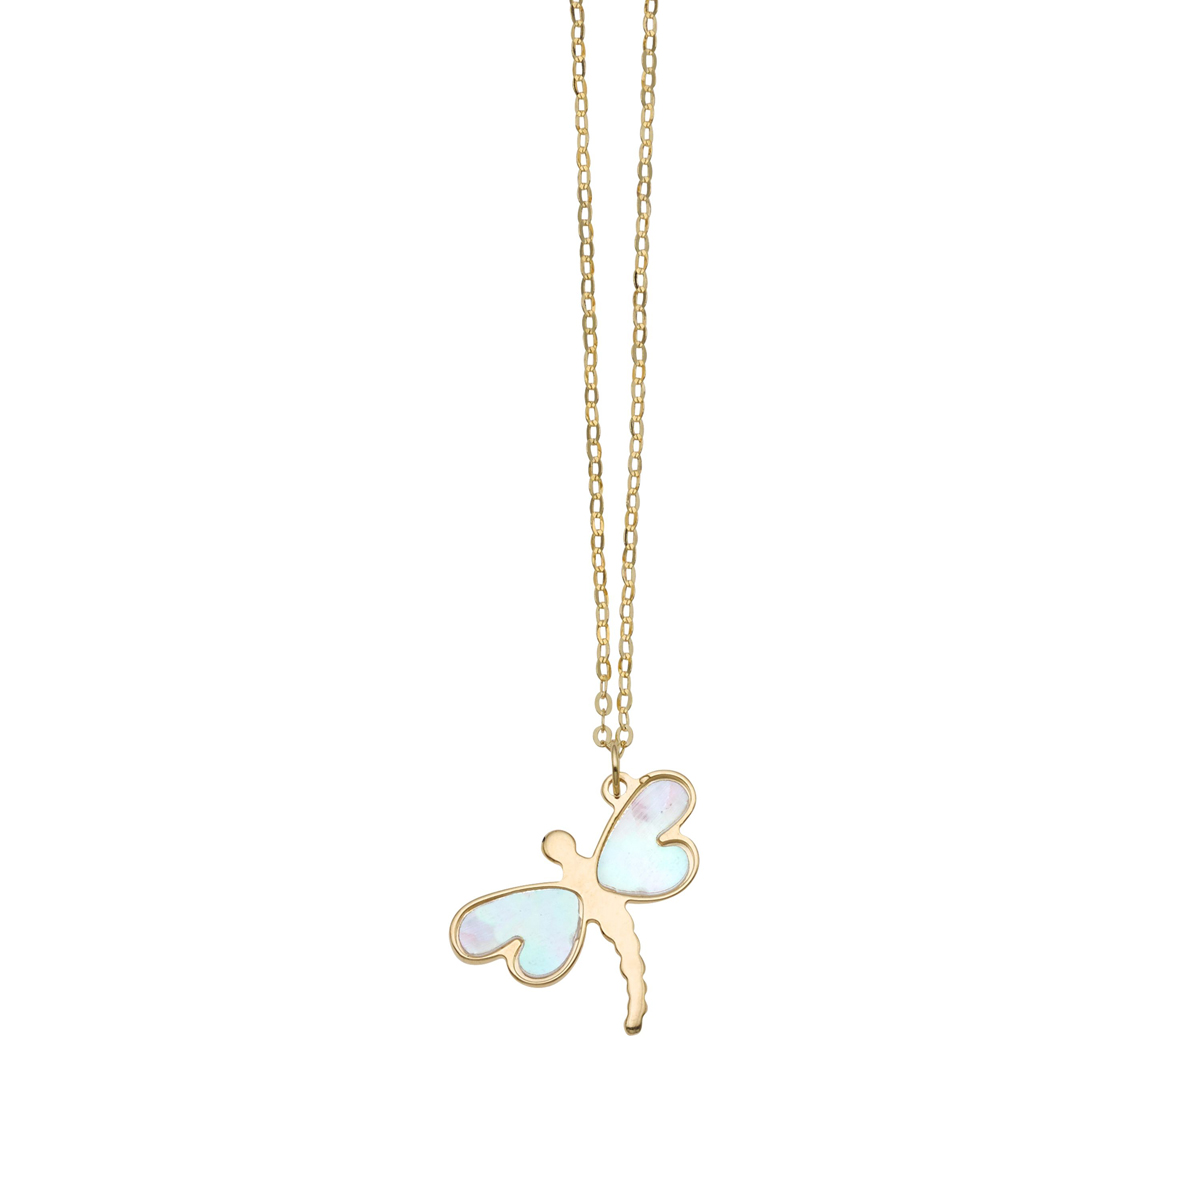 14 Karat Yellow Gold Mother of Pearl Dragonfly Pendant Necklace